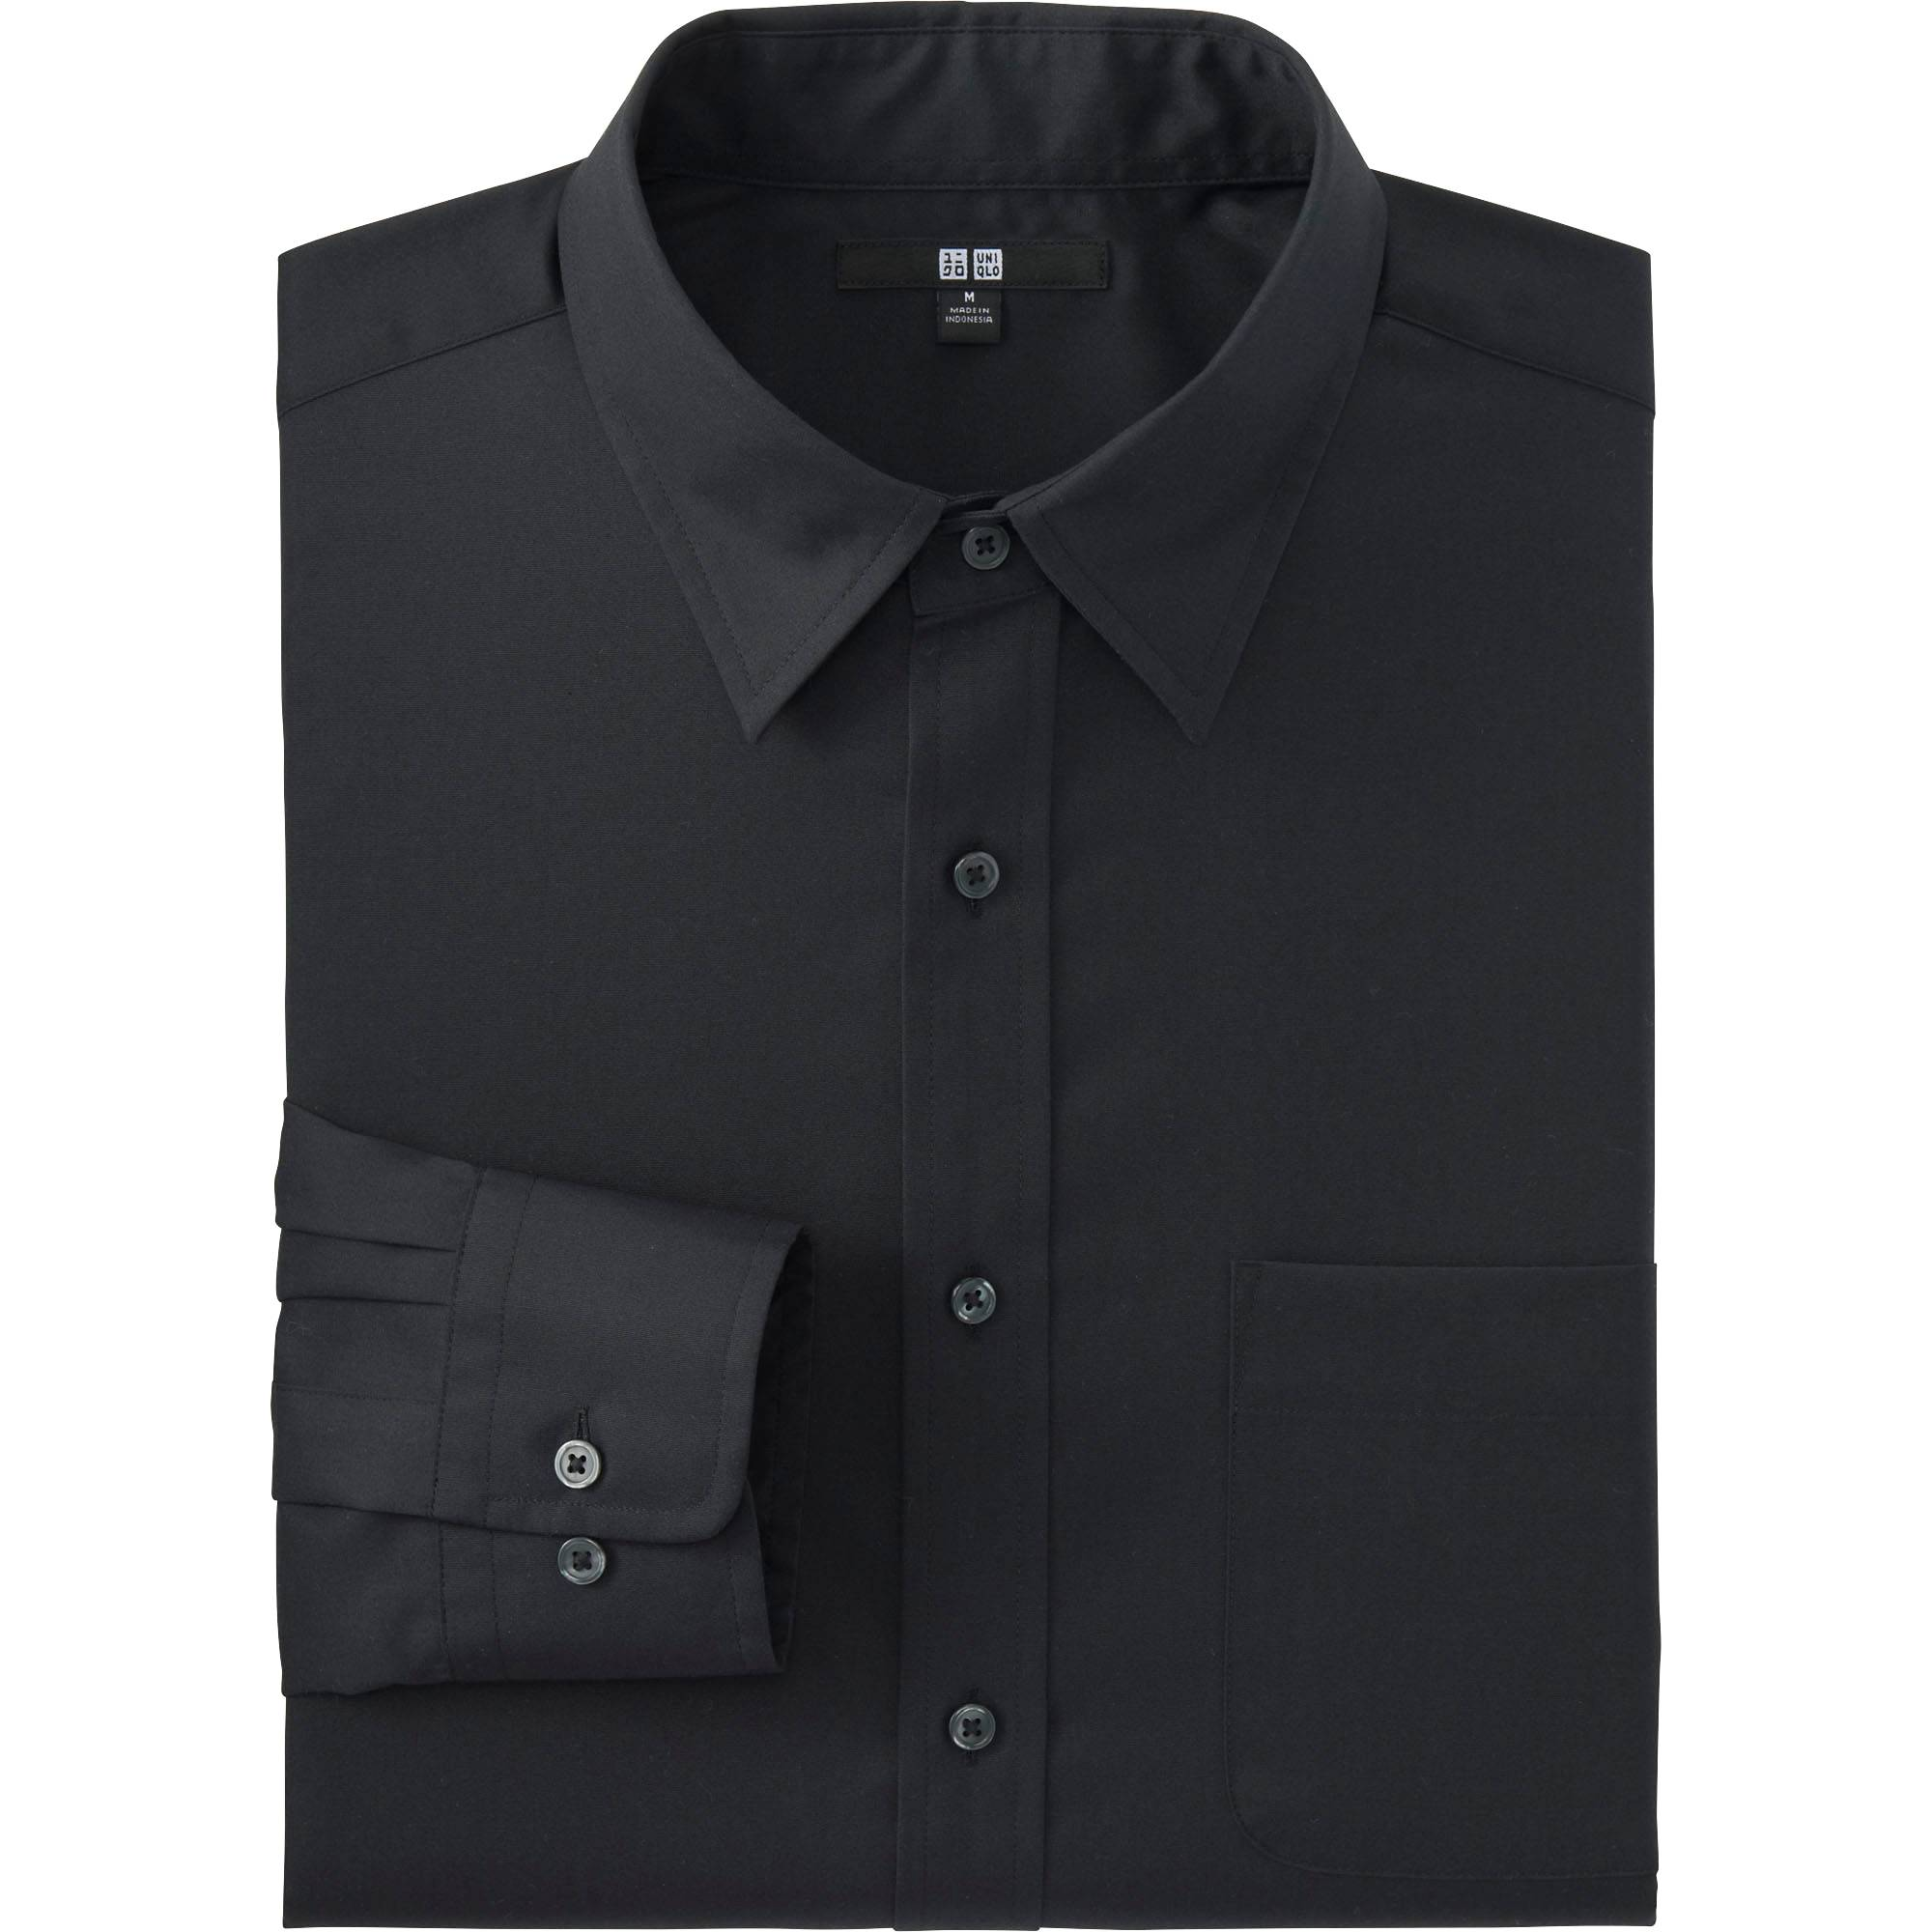 Dress Shirts: Free Shipping on orders over $45 at ketauan.ga - Your Online Shirts Store! Get 5% in rewards with Club O! Domani Blue Luxe Men's Black/ White Trim Button-down Dress Shirt. Galaxy By Harvic Men's Long Sleeve Micro-Pinstripe Slim Fit Dress Shirts. 5 Reviews. Quick View.